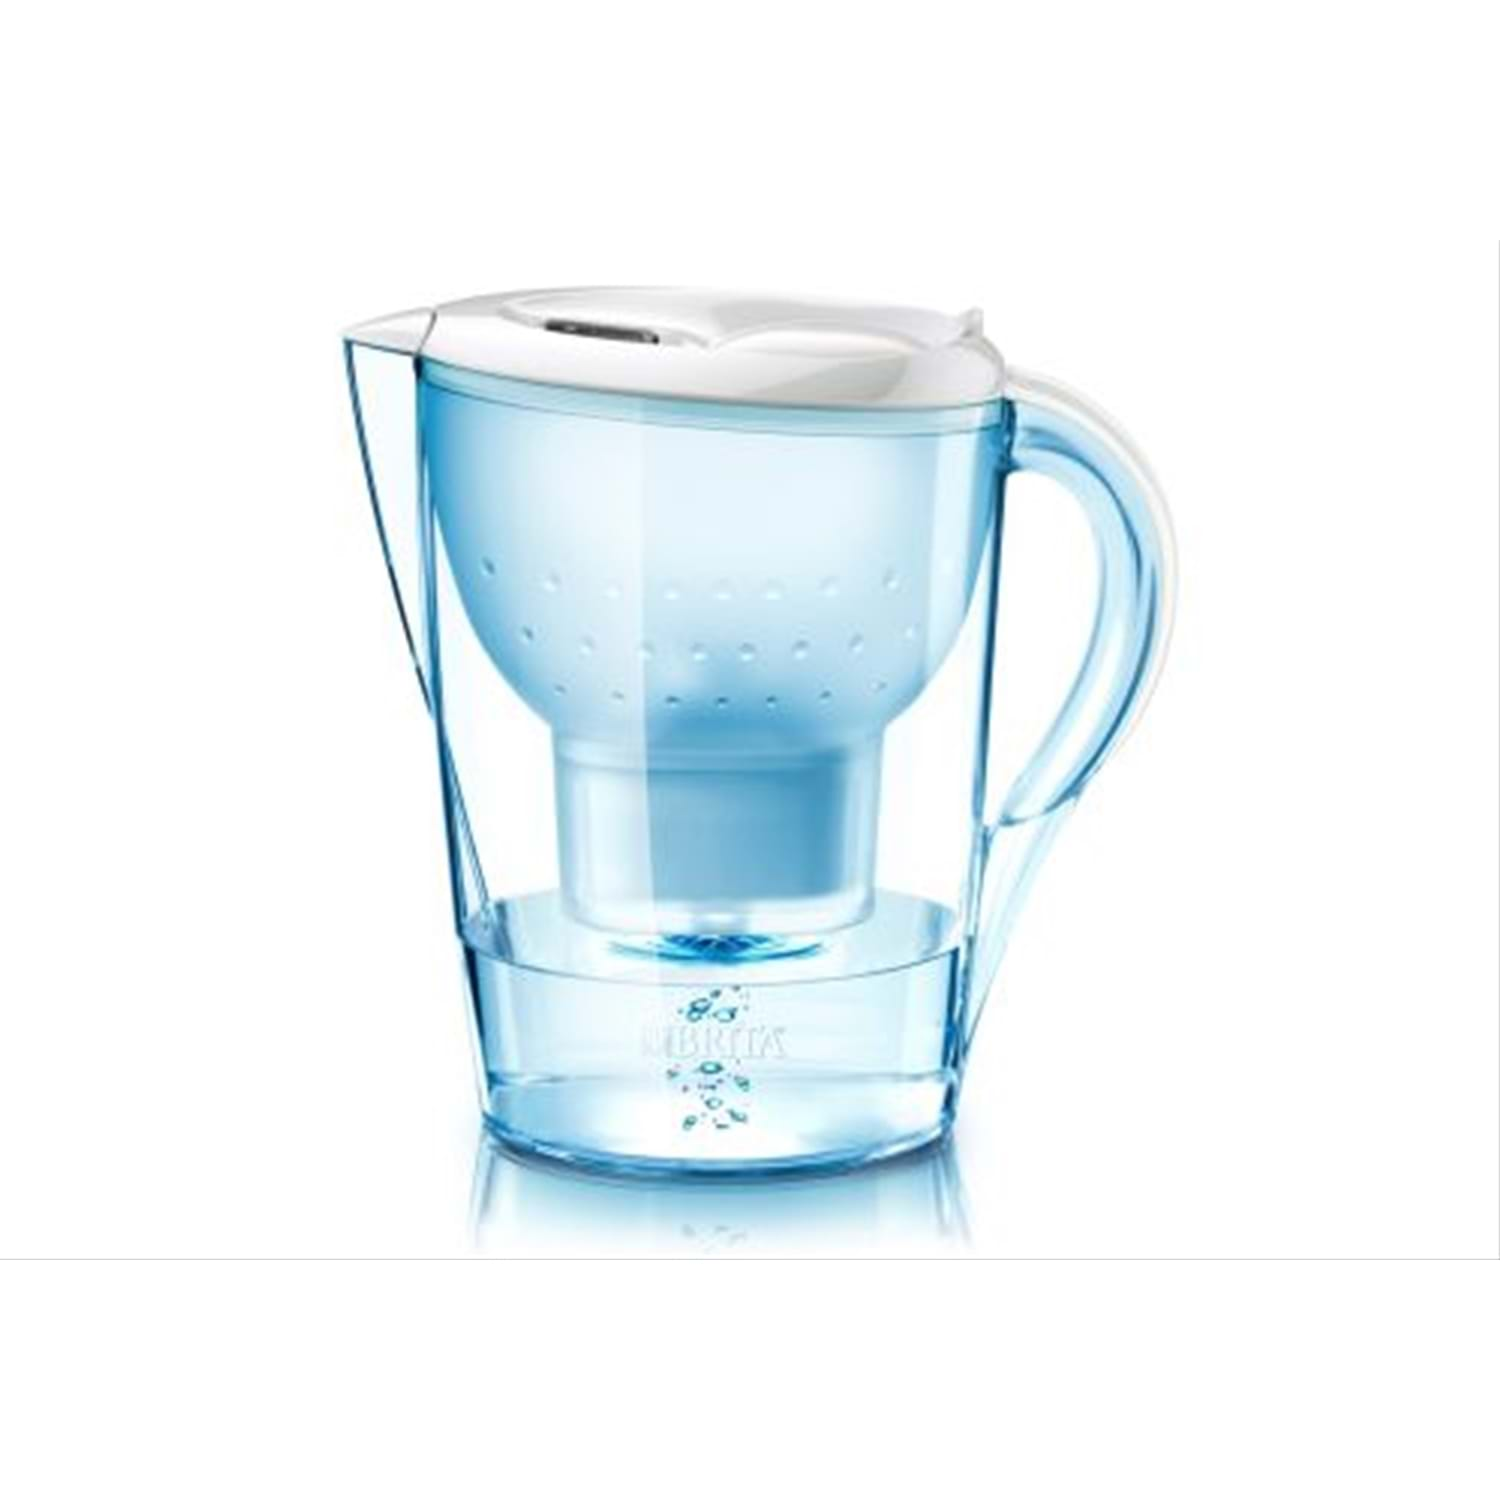 brita maxtra instructions for use